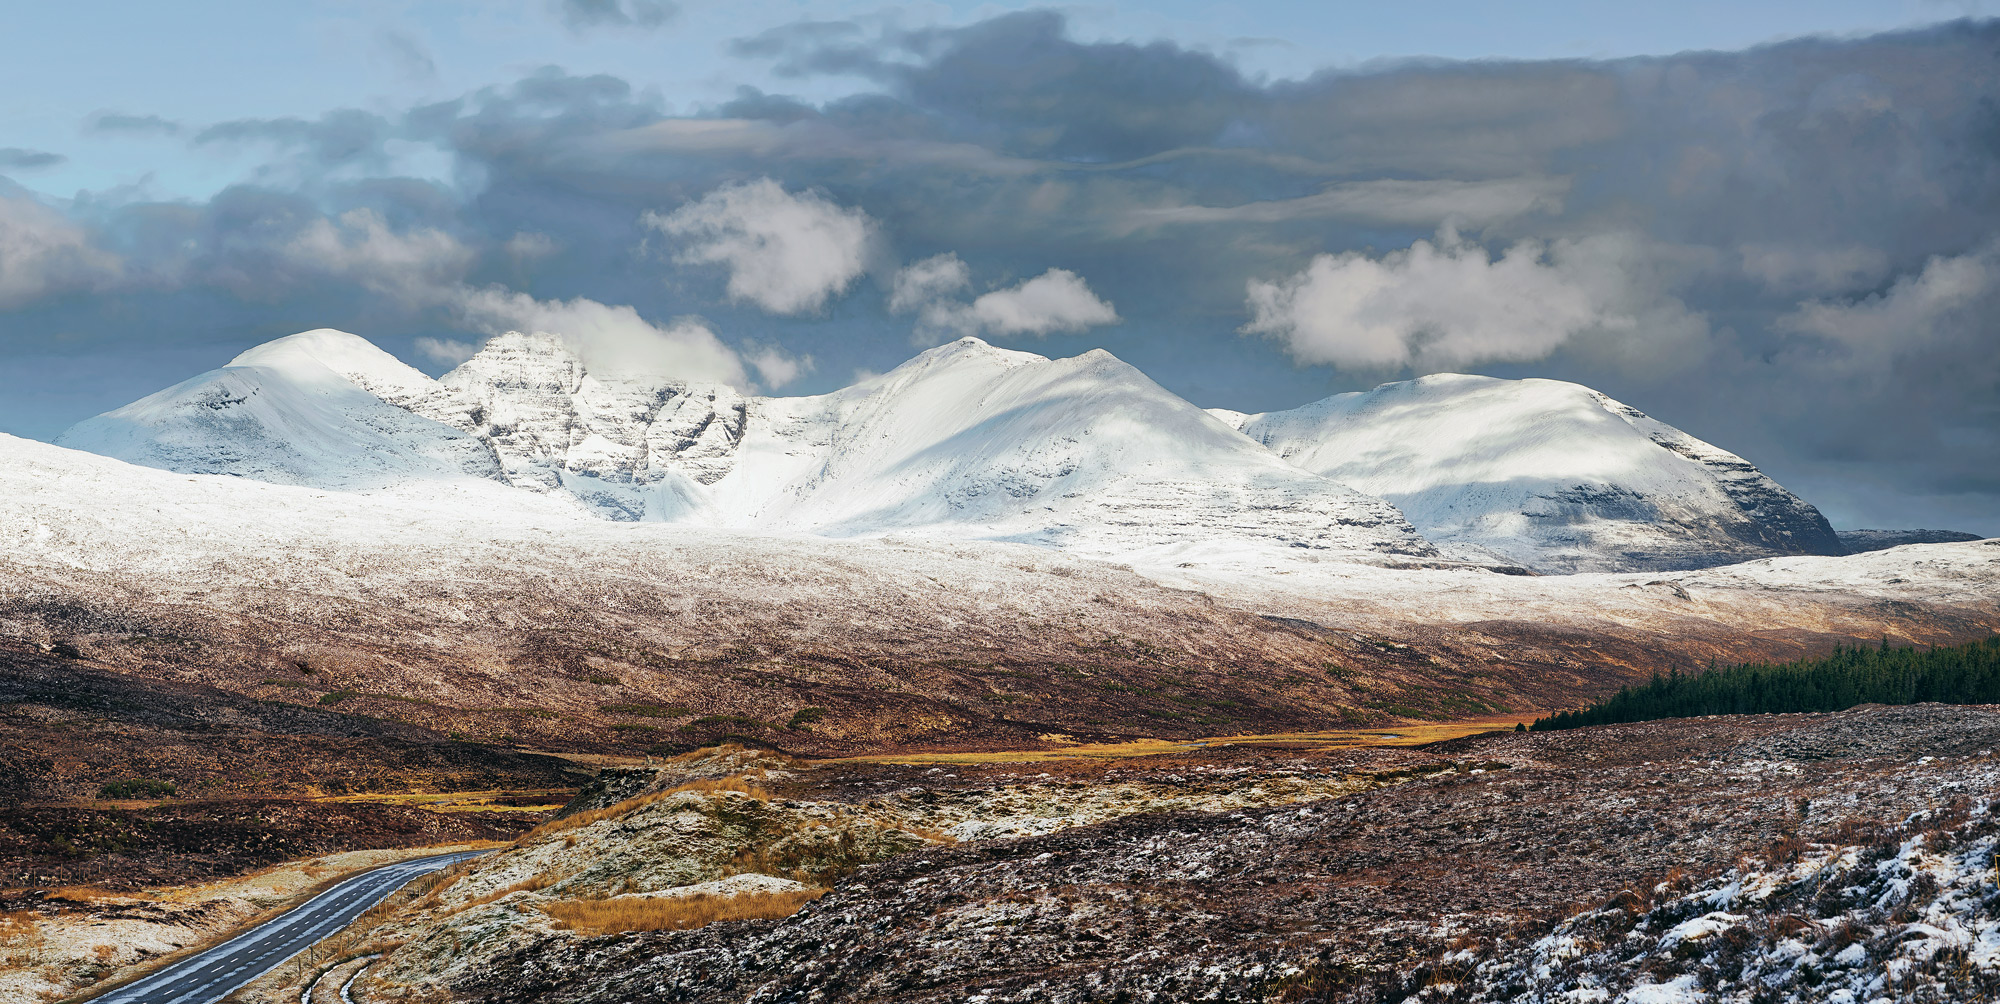 Snow clad An Teallach dappled with light and shade on the high road connecting Braemore Junction with Dundonnell